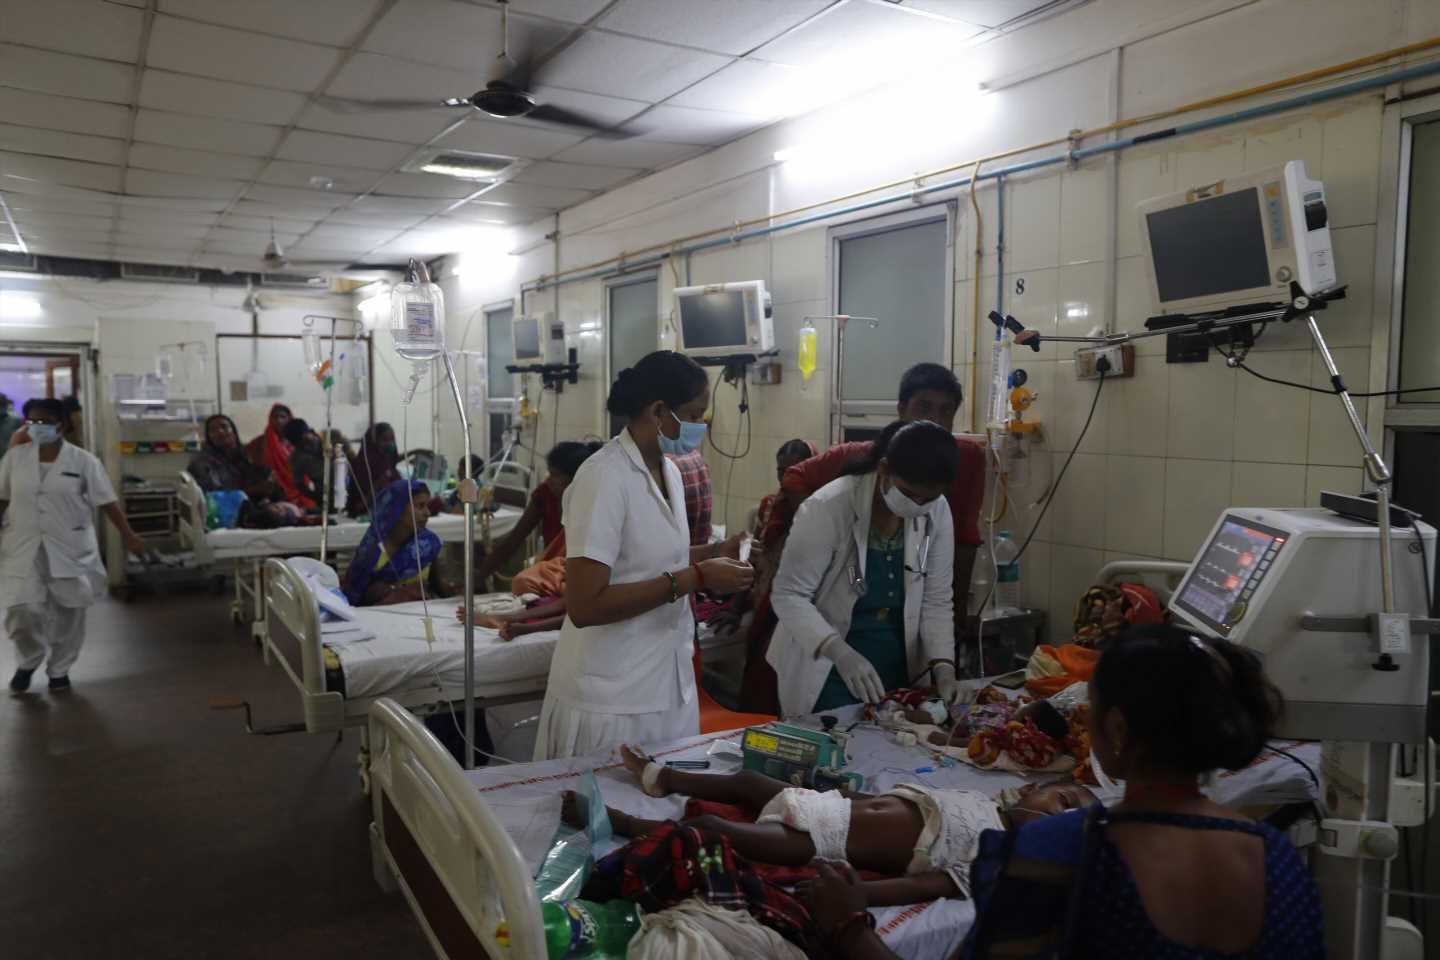 Post-monsoon fever outbreak kills over 100 in Indian state